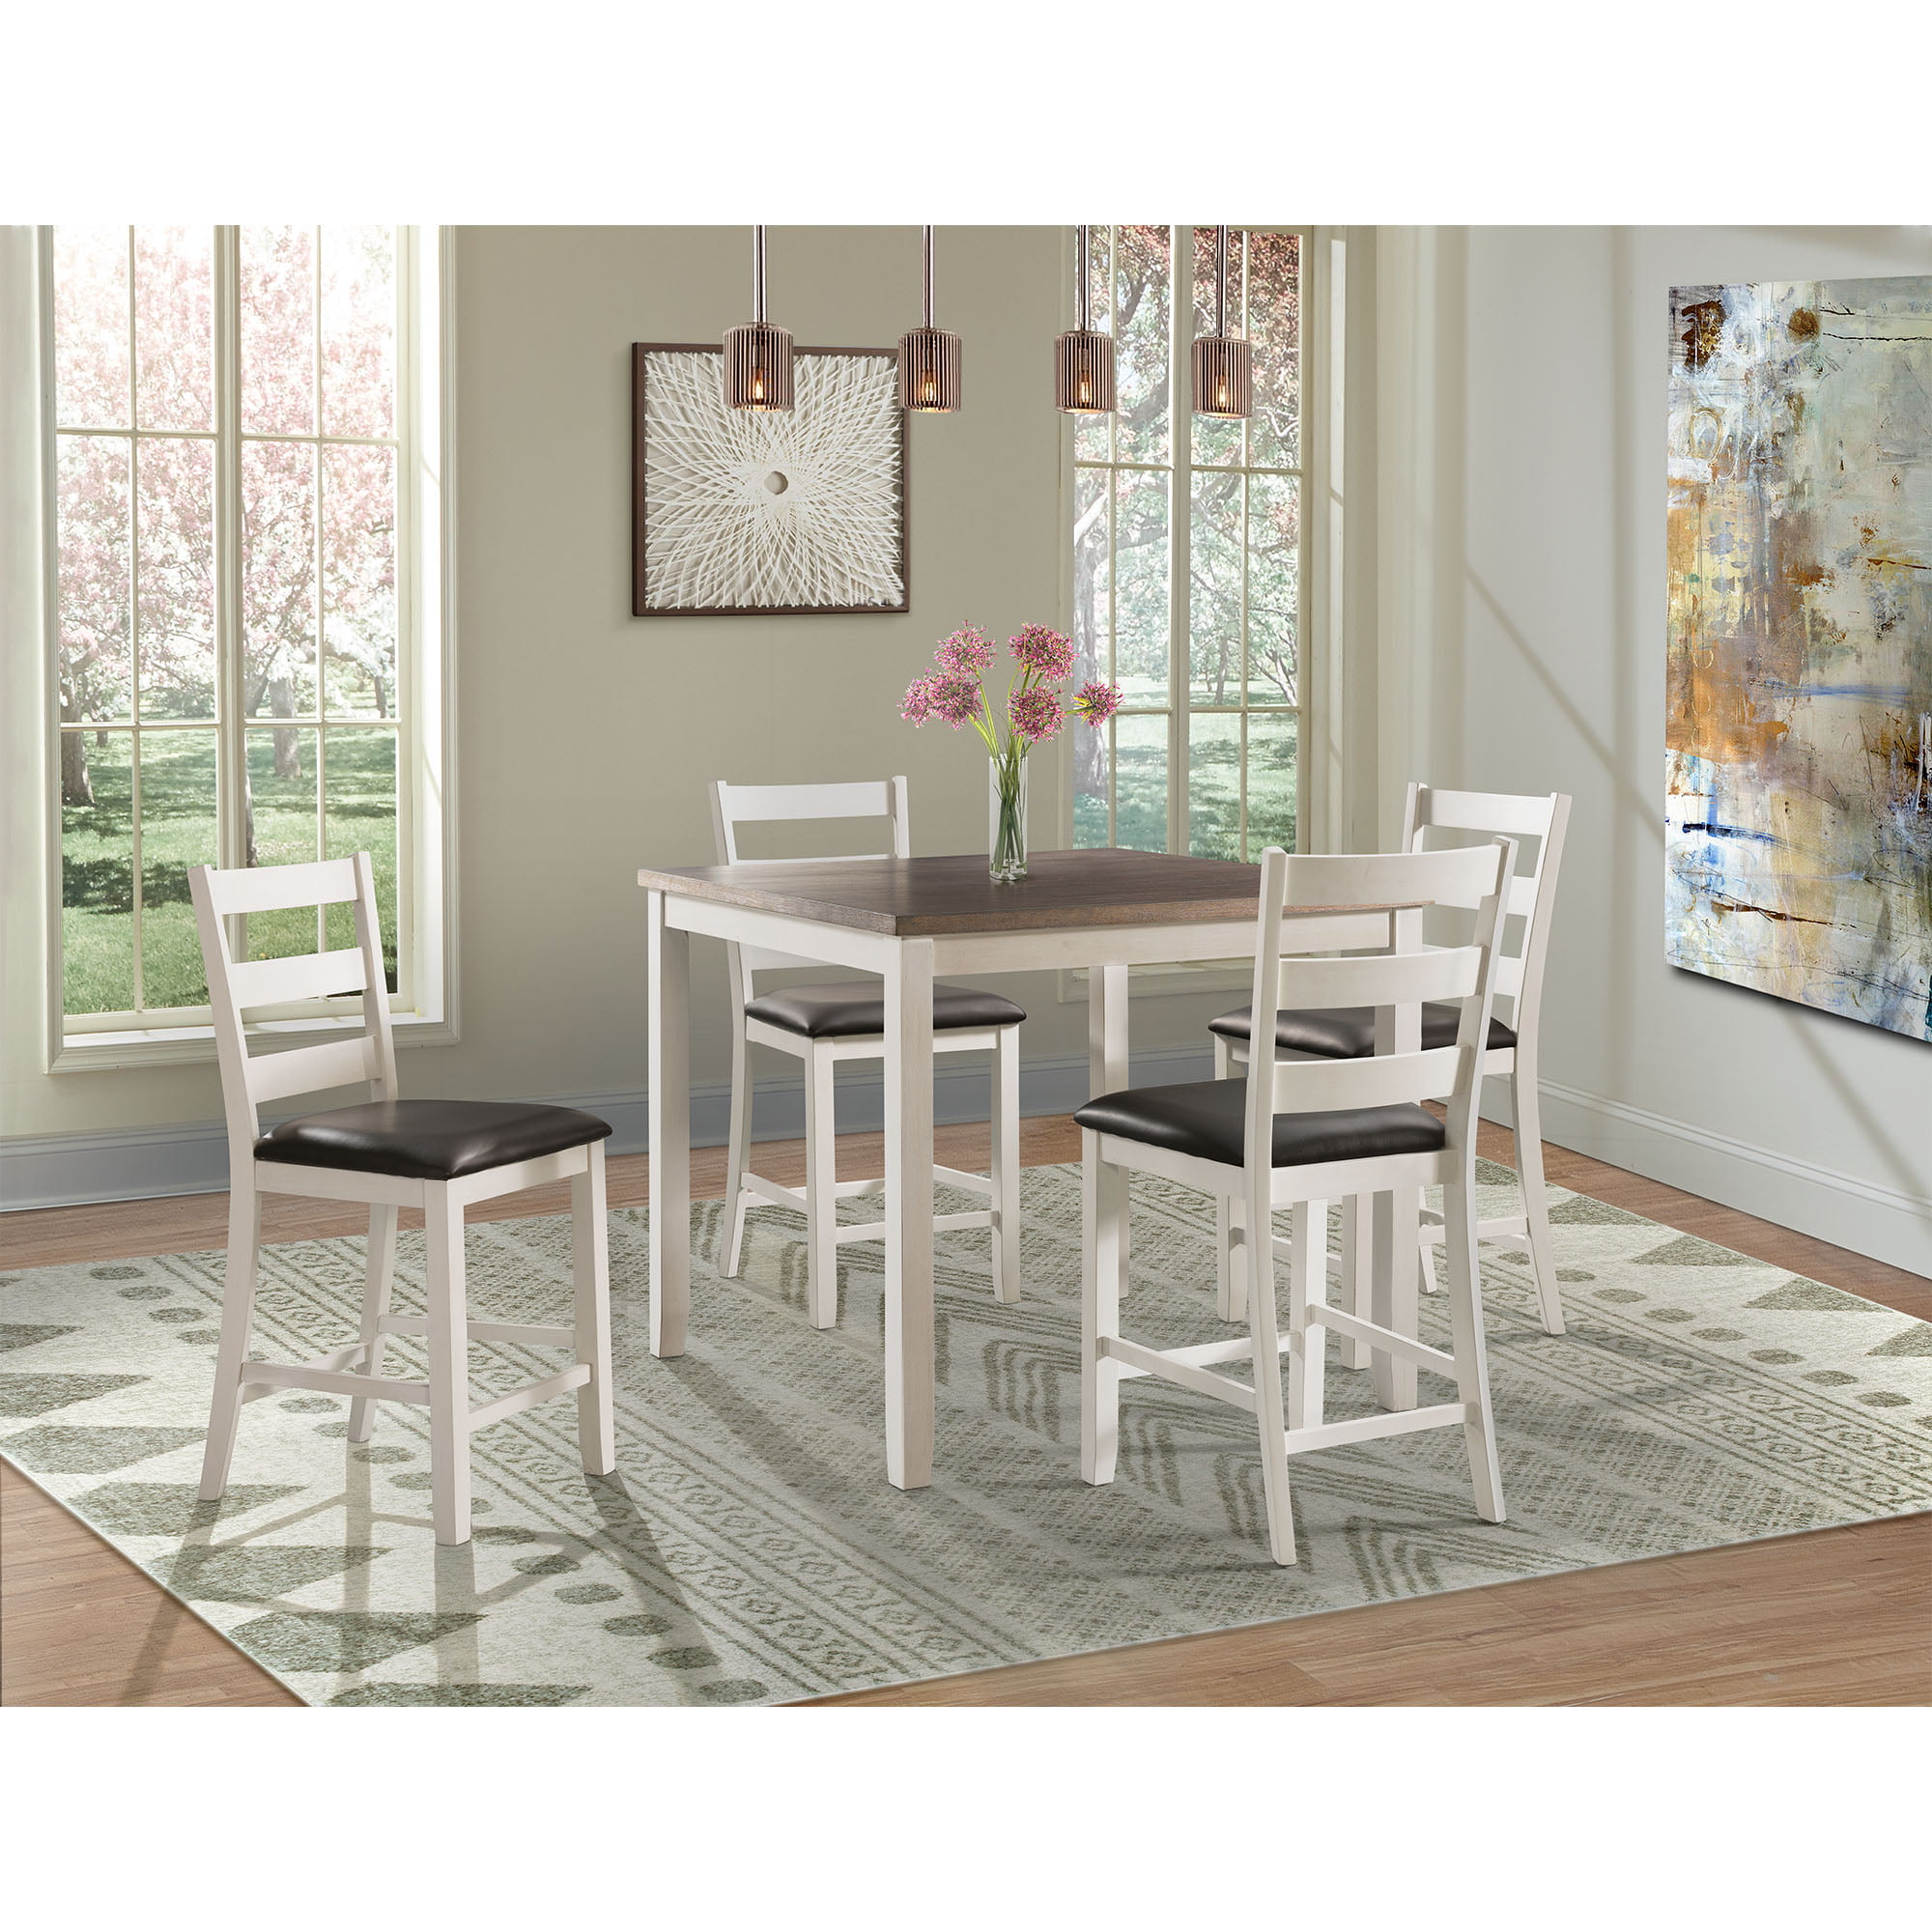 Picket House Furnishings Kona Brown 5 Piece Counter Height Dining Set Table Four Chairs Walmart Com Walmart Com